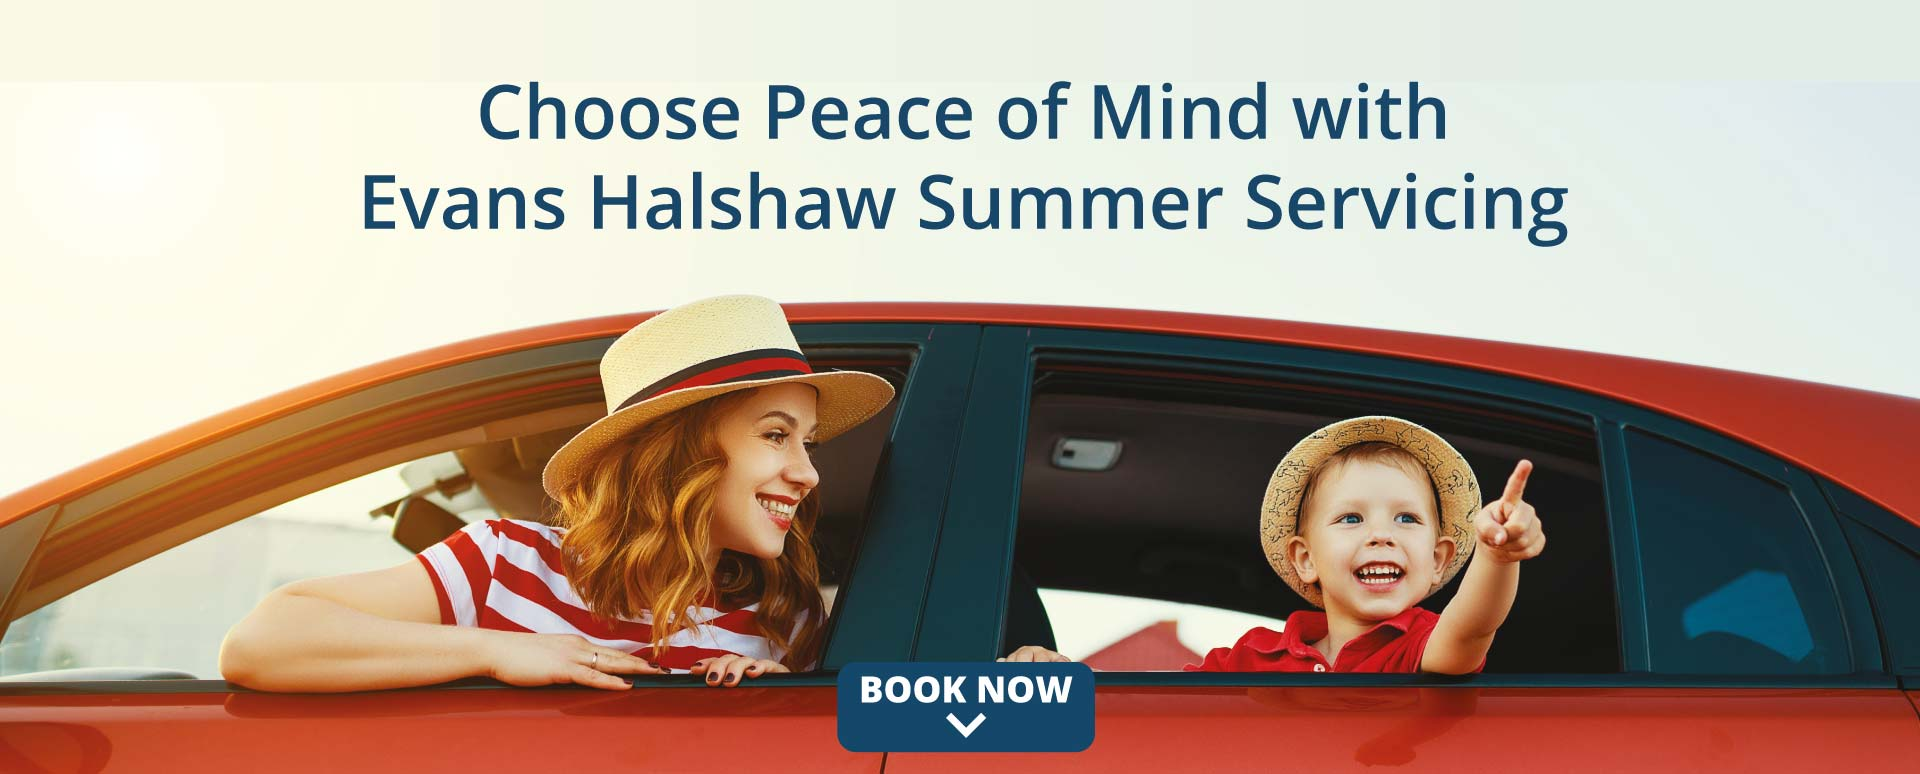 Choose Peace of Mind with Summer Servicing